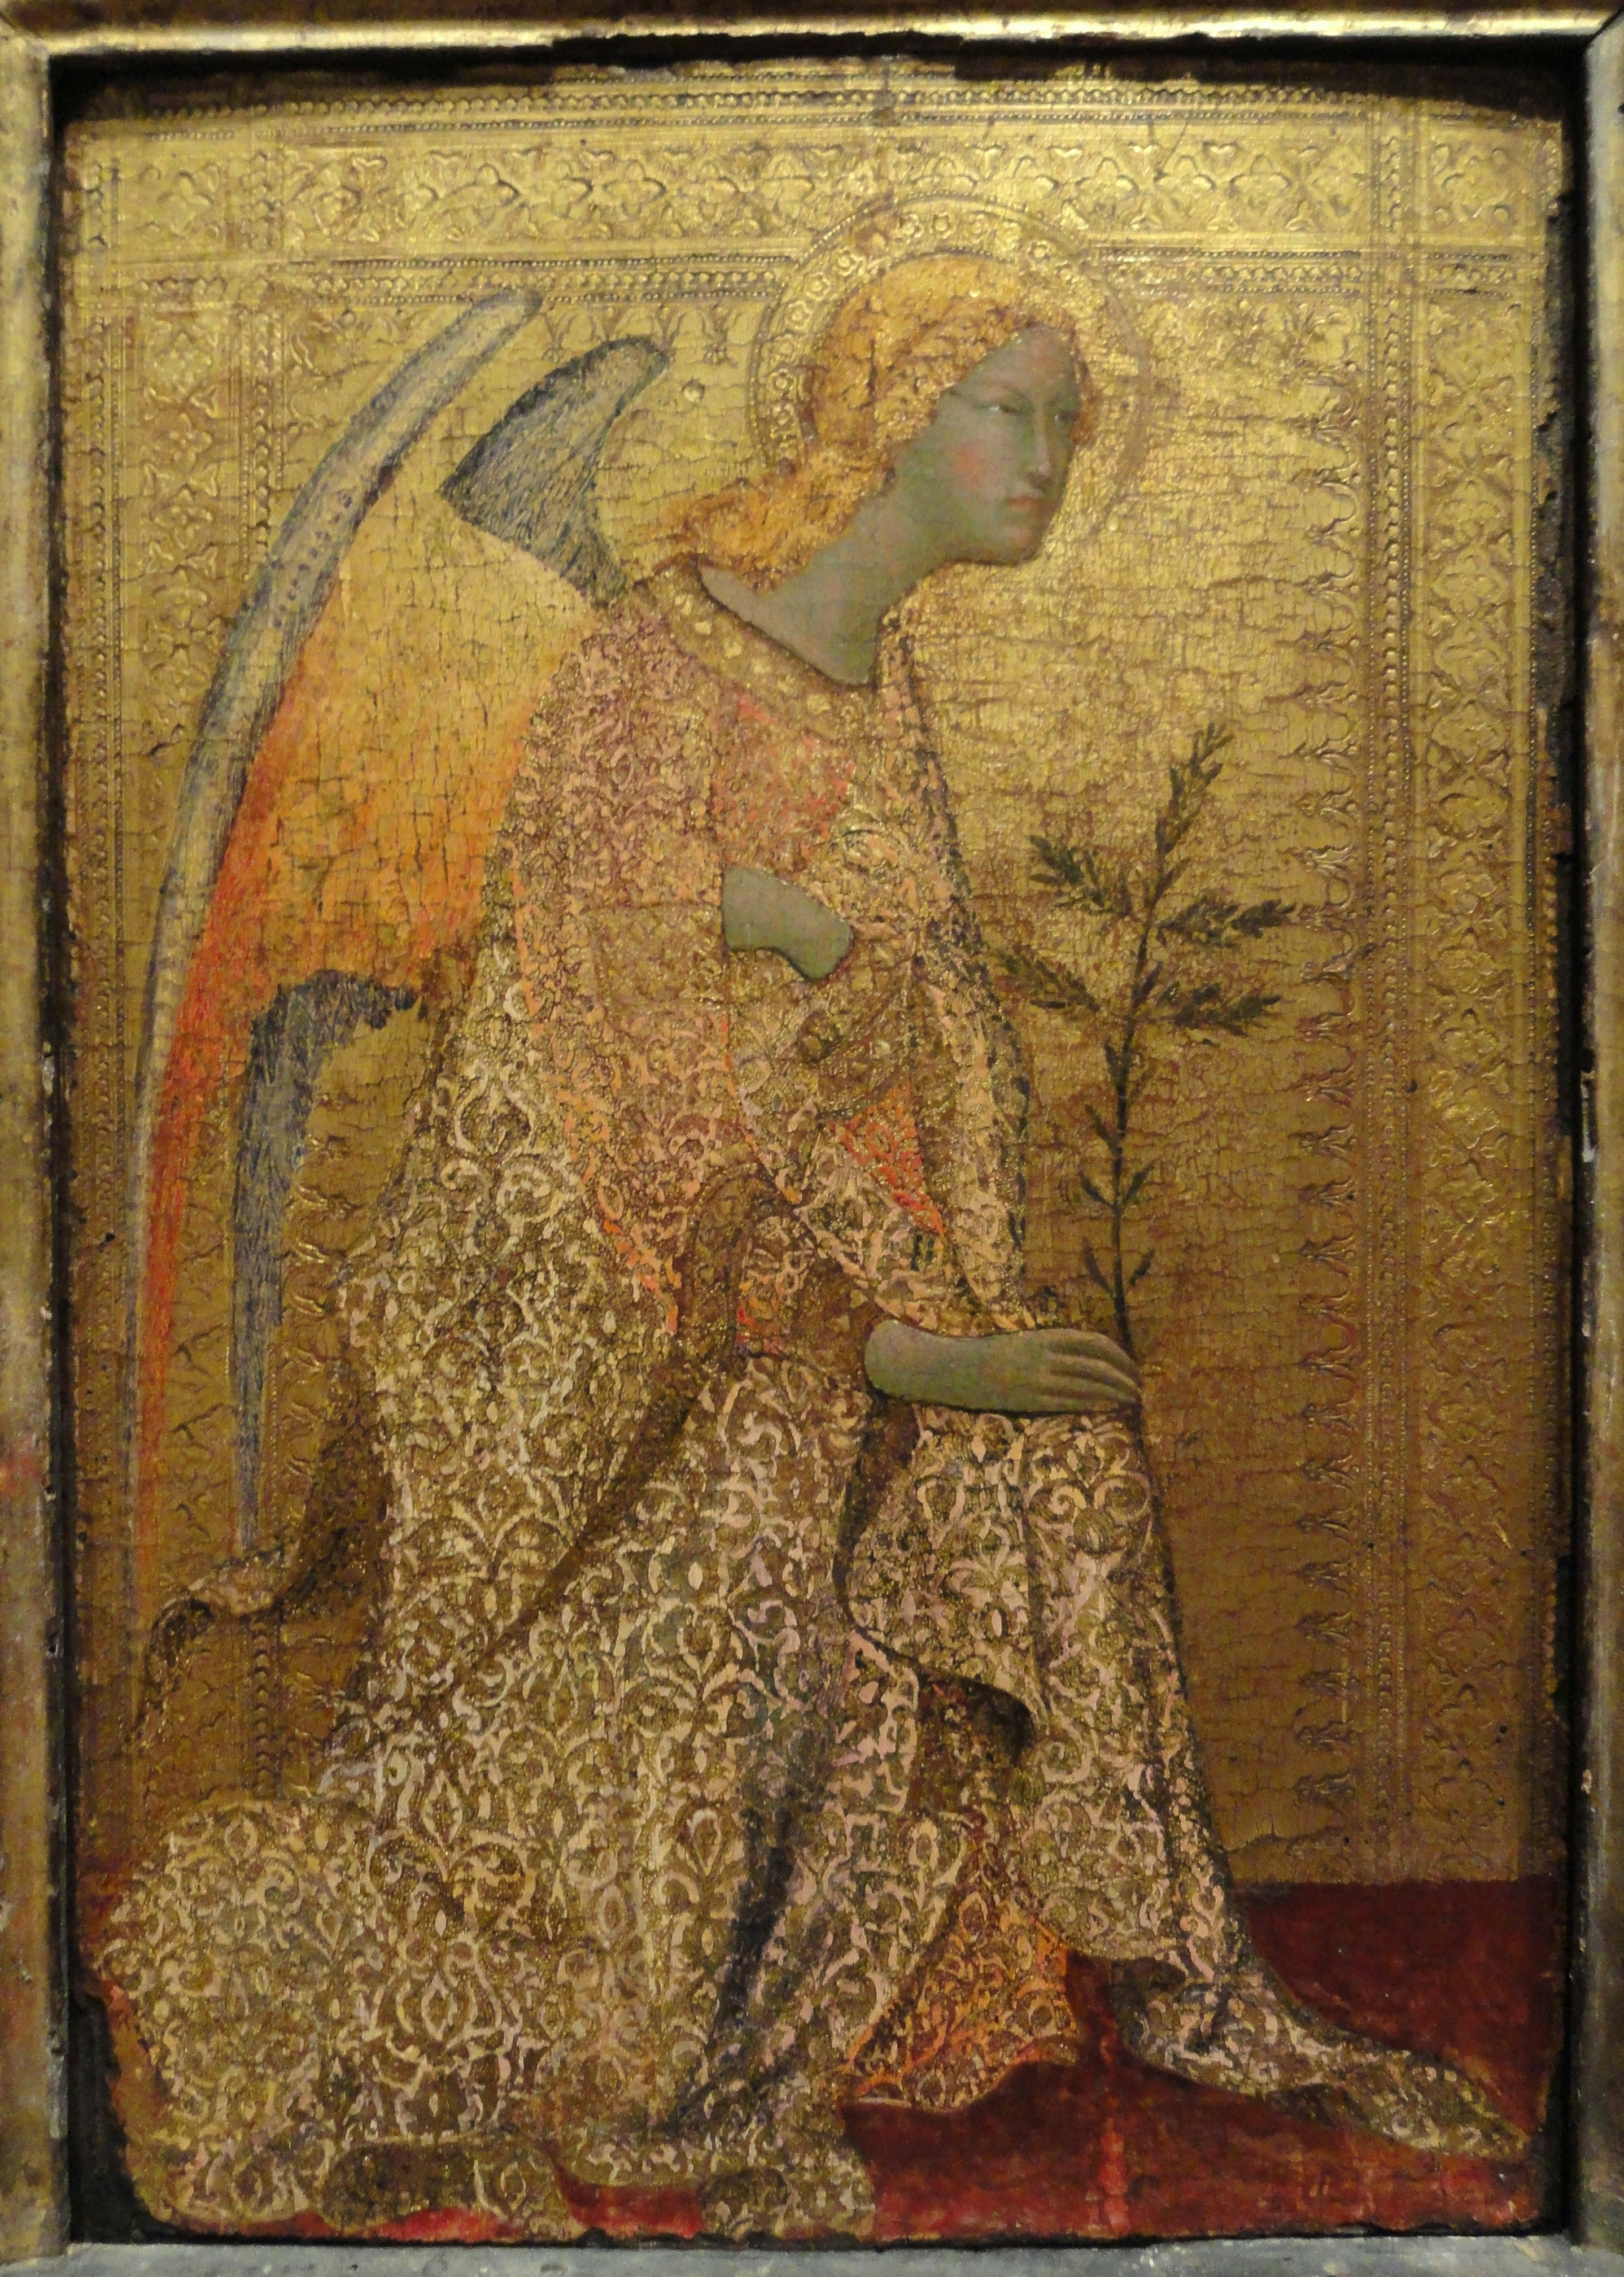 File:The Angel of the Annunciation by Simone Martini, c  1333